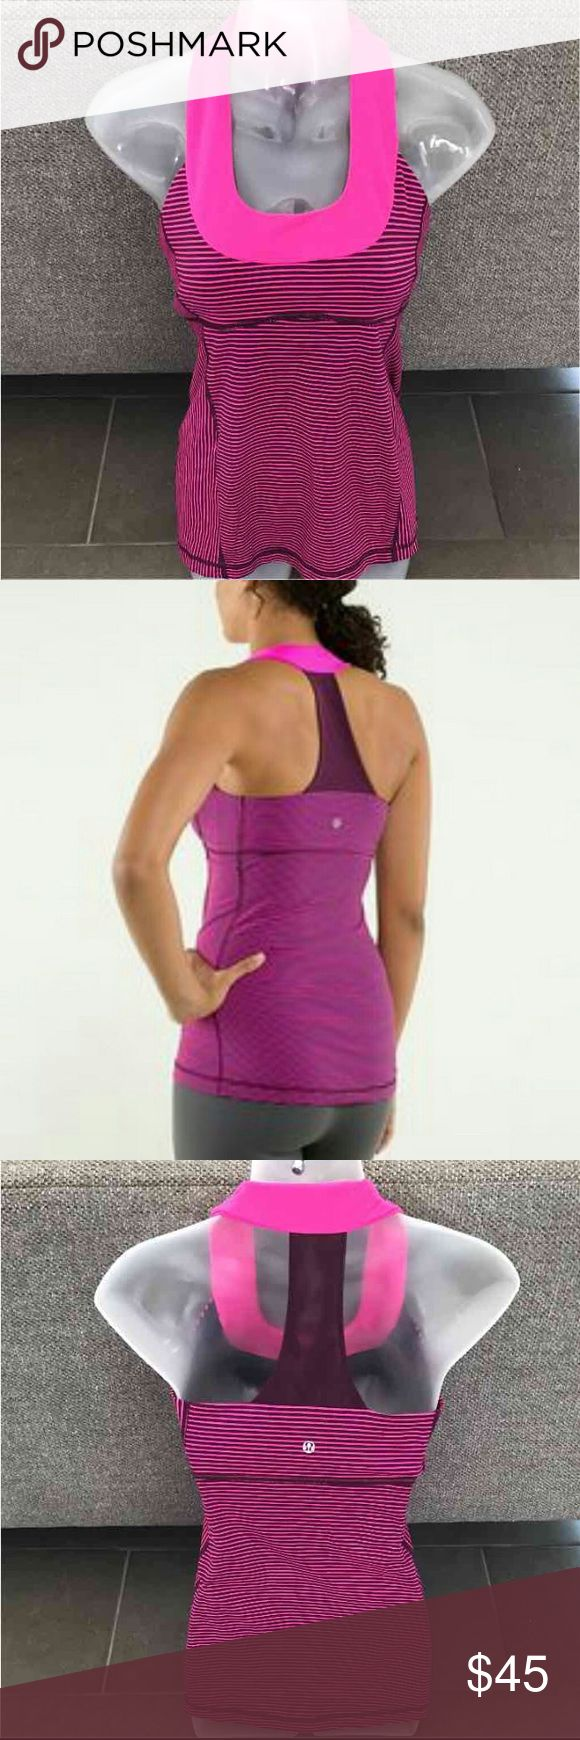 """💕NWOT  Lululemon scoop neck razor back tank top💕 Excellent condition amazing fit, rare vibrant pink and purple color. Sold out in stores! Mesh razor back size tag cut out but I think I runs like a size 6 please refer to the measurements to make sure it would fit you . Armpit to armpit 14"""" length from top to bottom 25.5"""" Lululemon luon material, built in shelf bra which also has small slits to insert your own bra cups .  This top is perfect for all kinds of sports or just wear as your…"""